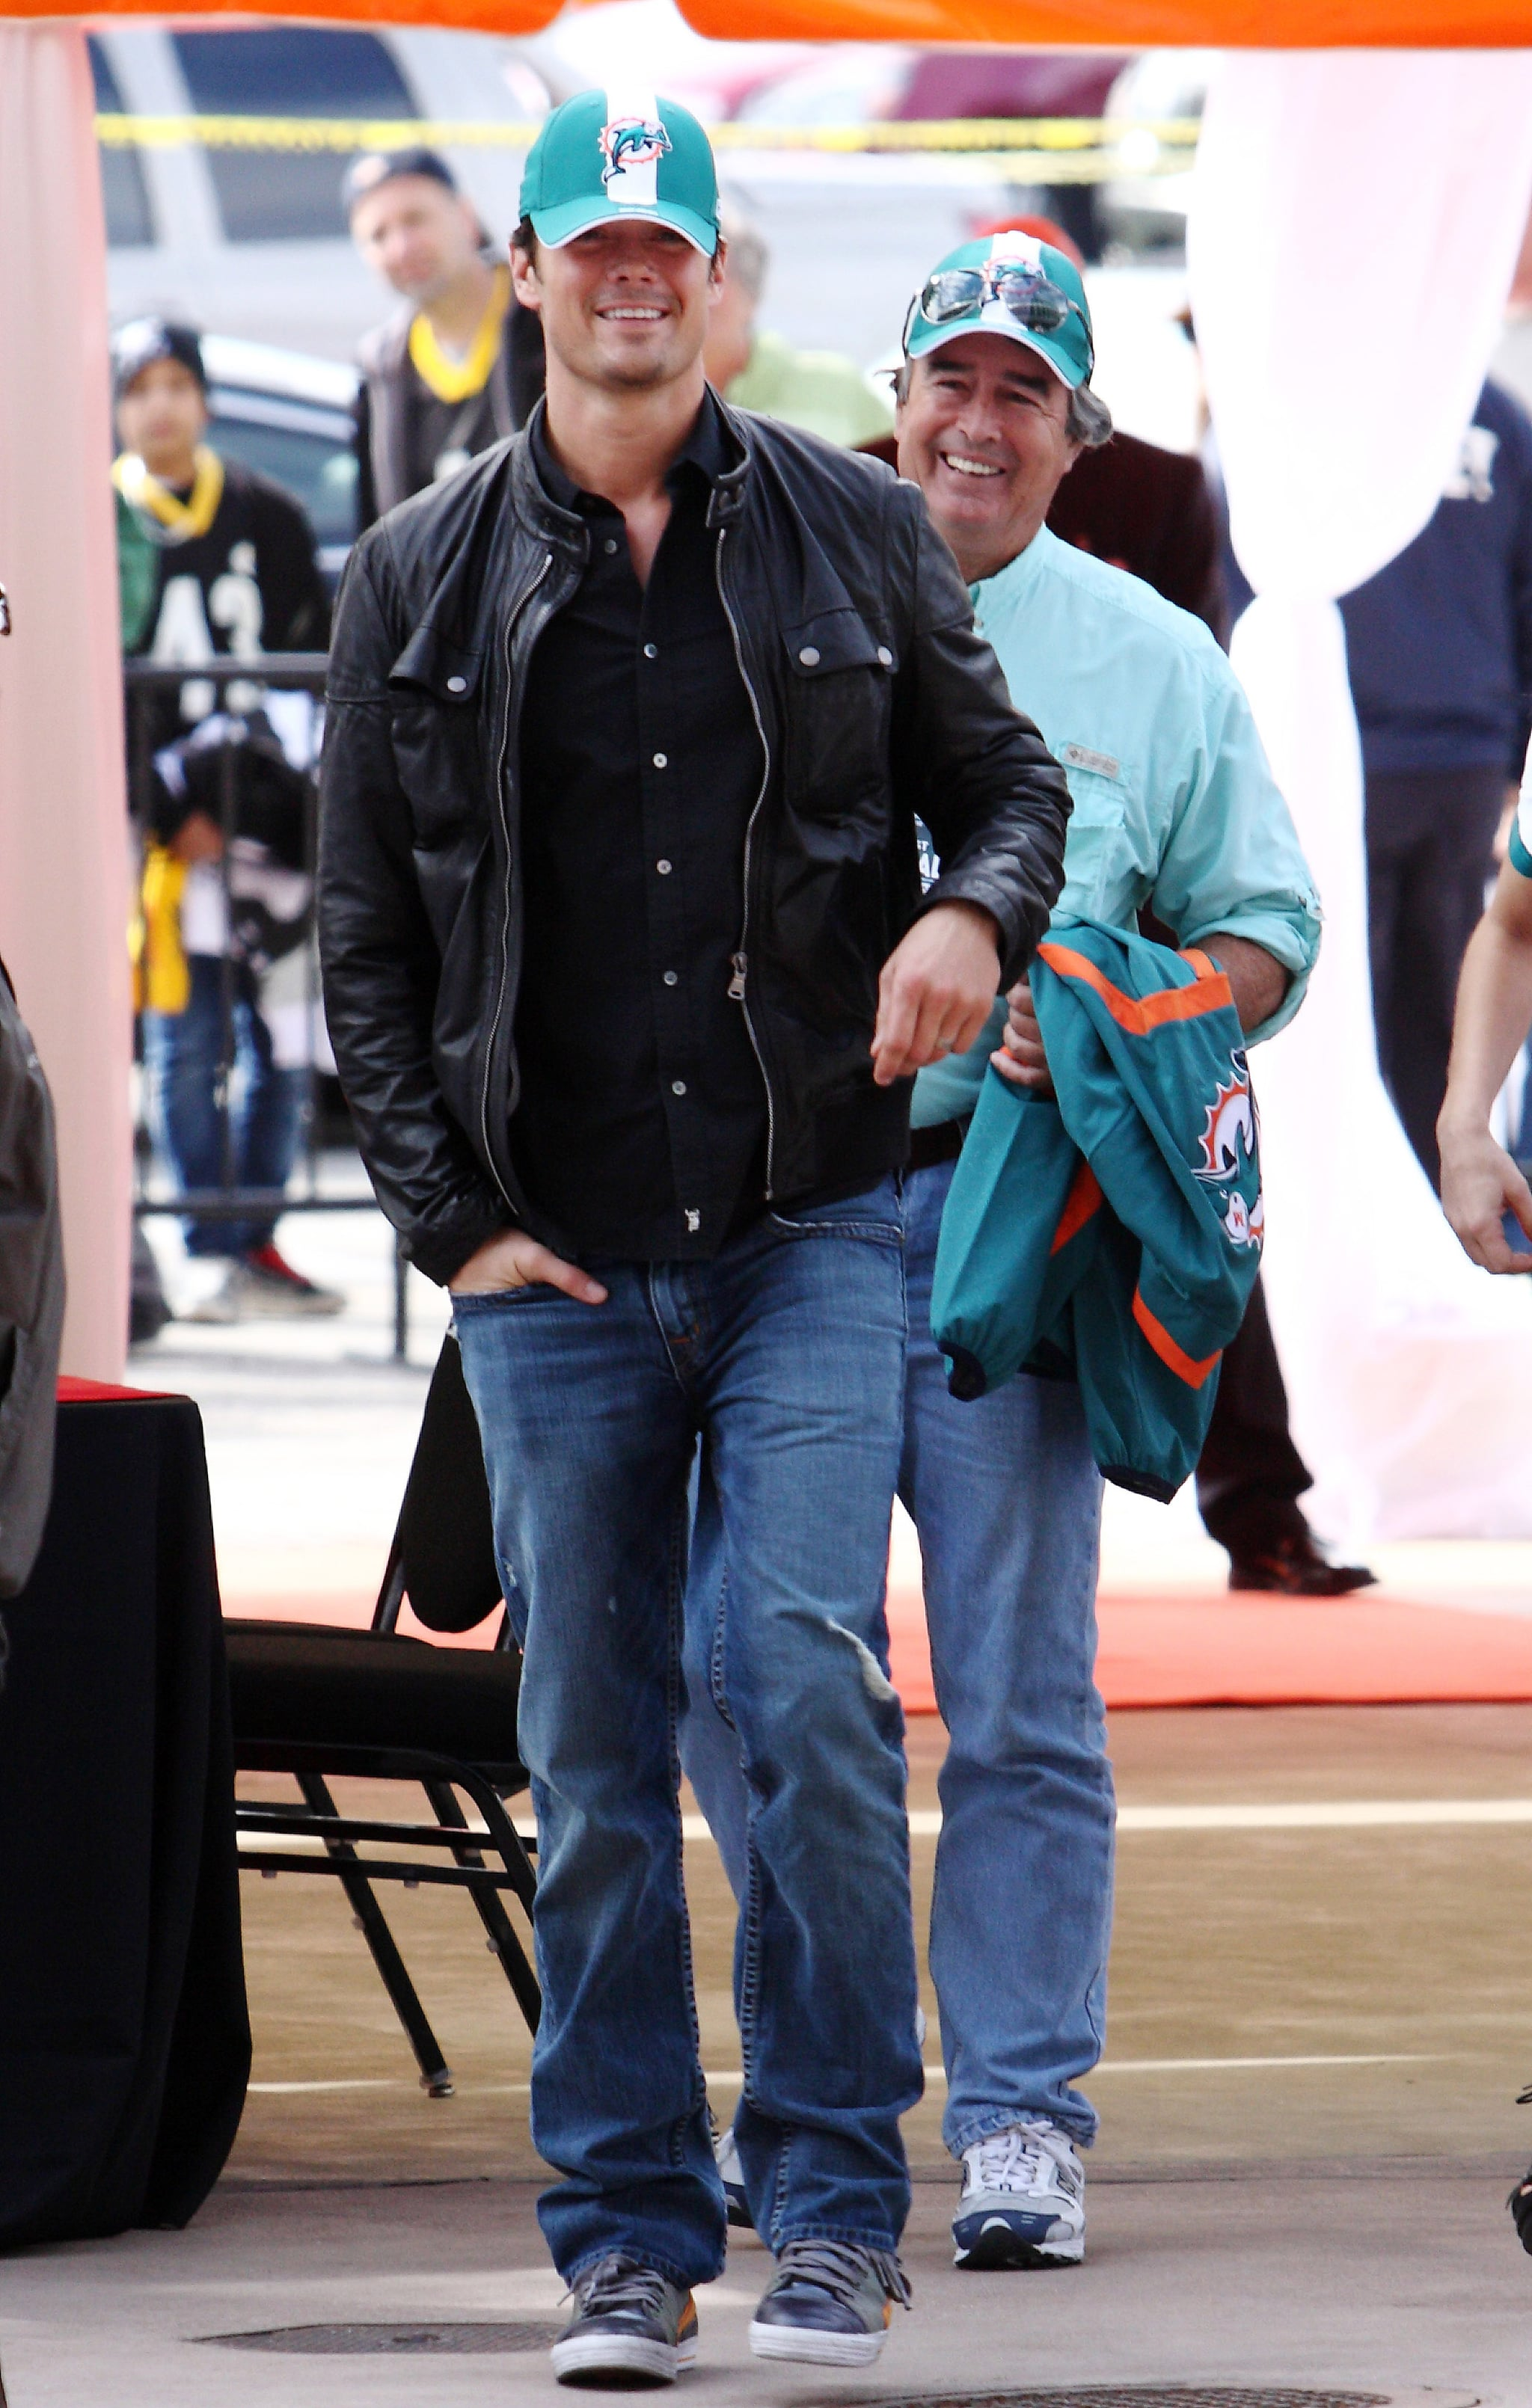 Josh Duhamel made his way into the Miami Dolphins in January 2010.